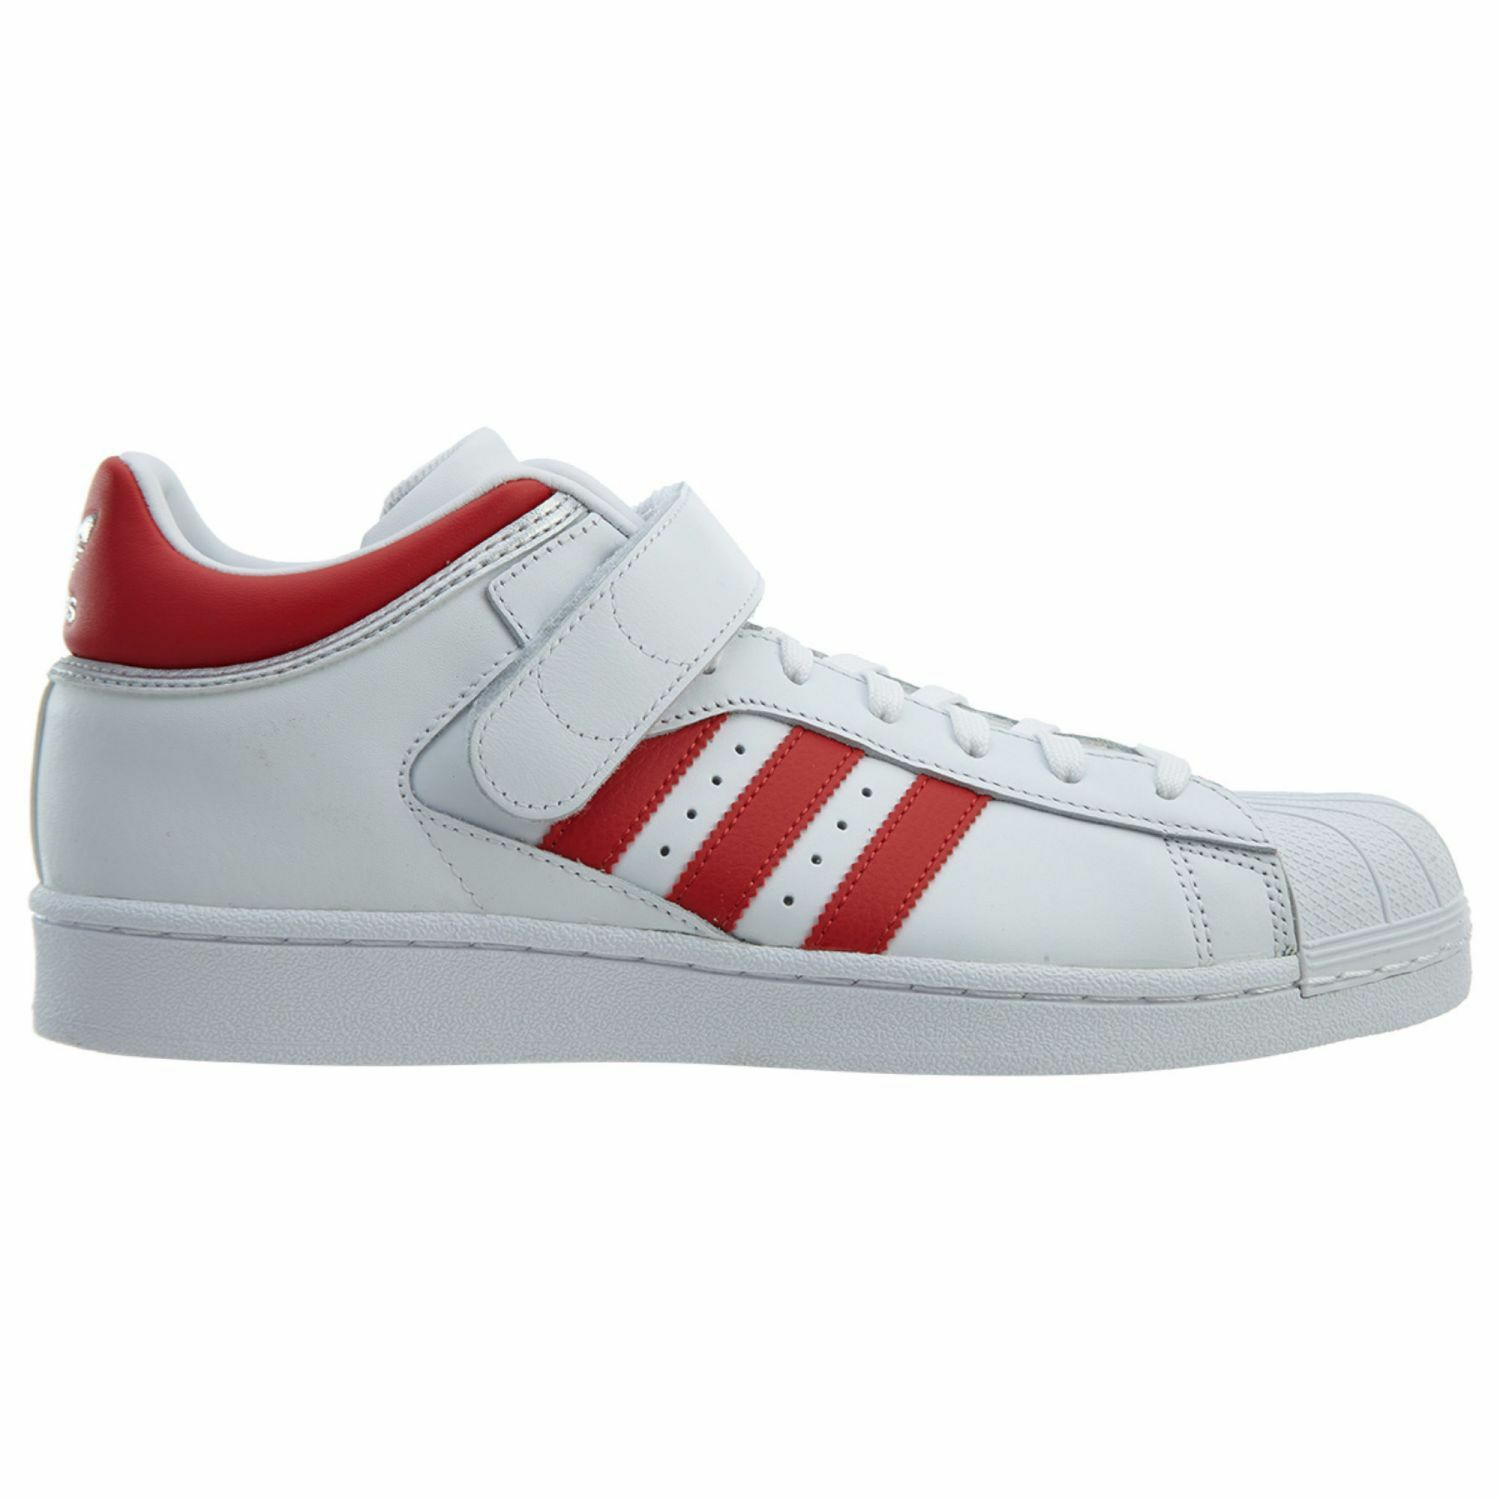 Adidas Pro Shell Mens BY4384 White Scarlet Red Leather Strap shoes Size 7